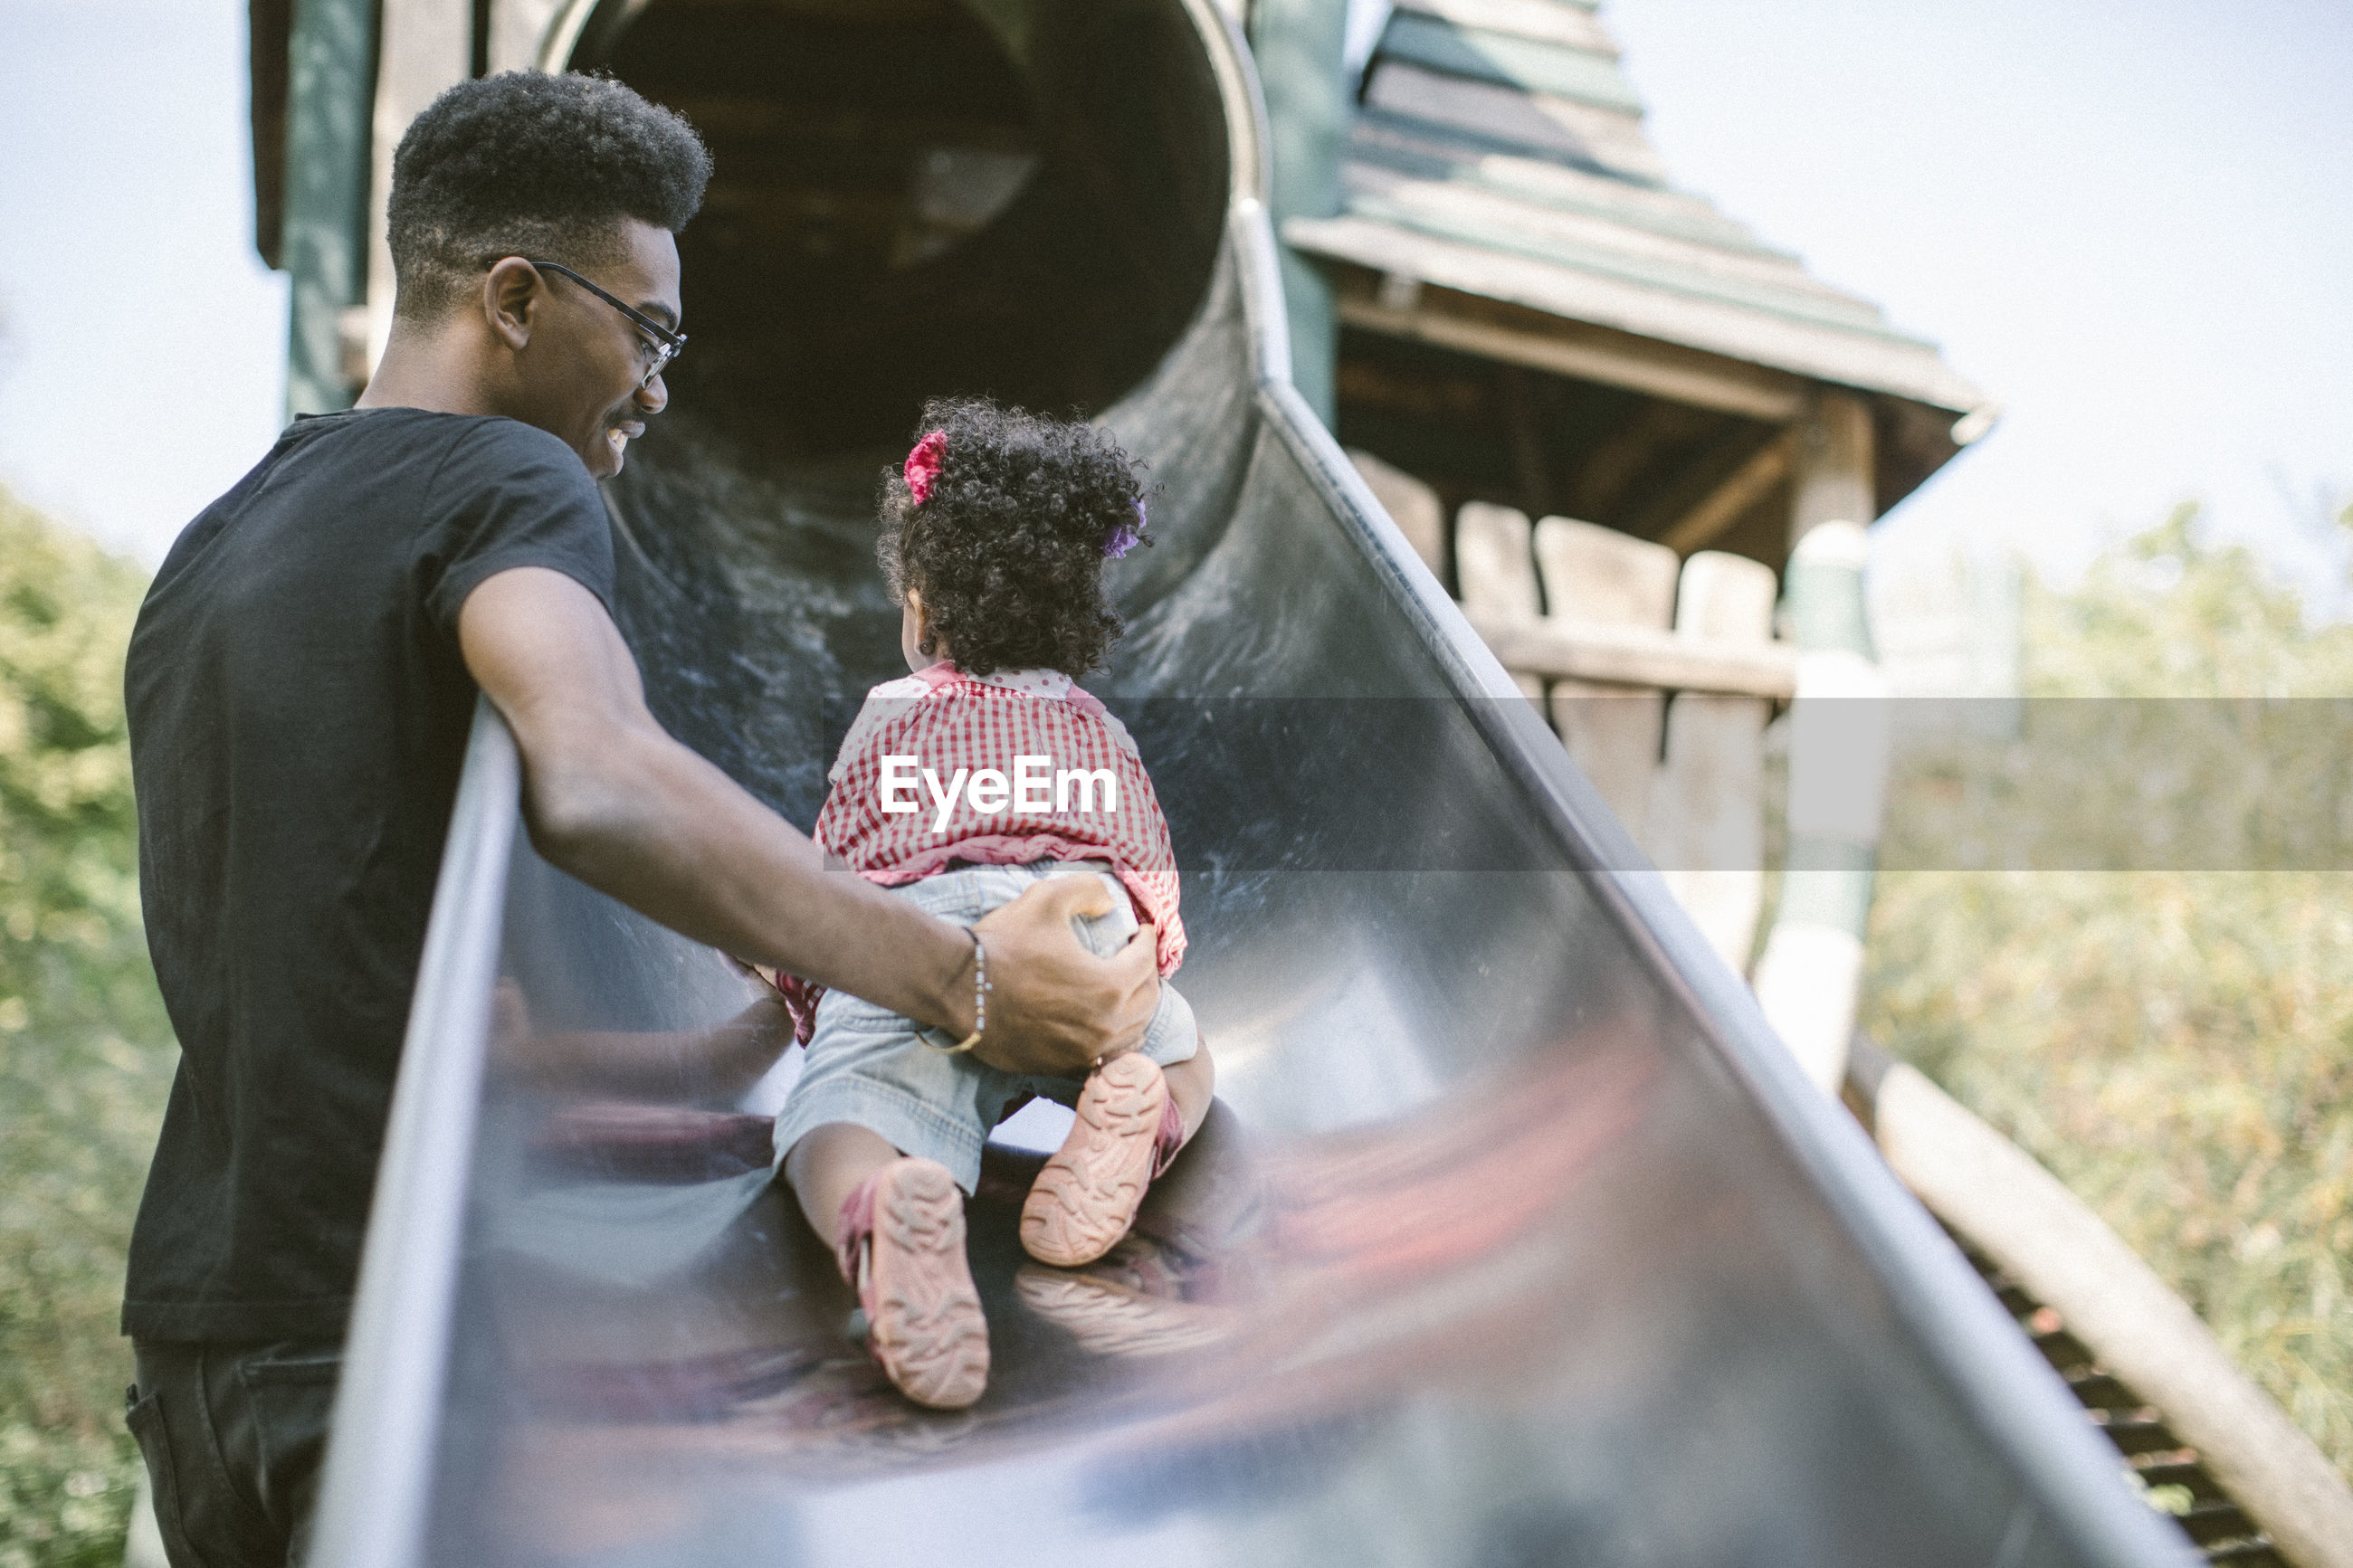 Father supporting daughter crawling up on slide at playground